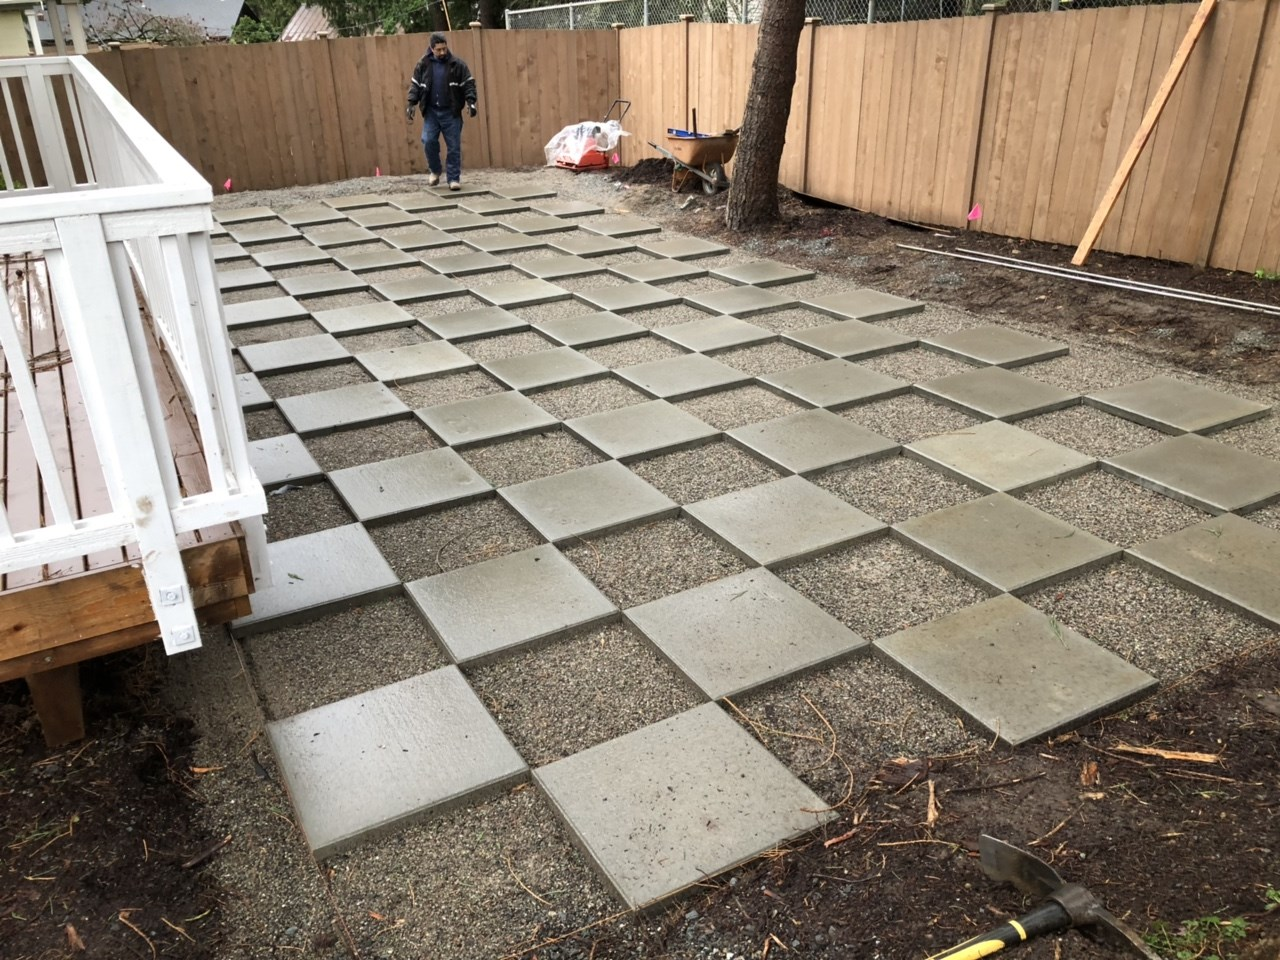 A photo of concrete blocks laid out in a backyard in preparation for a checkerboard lawn.